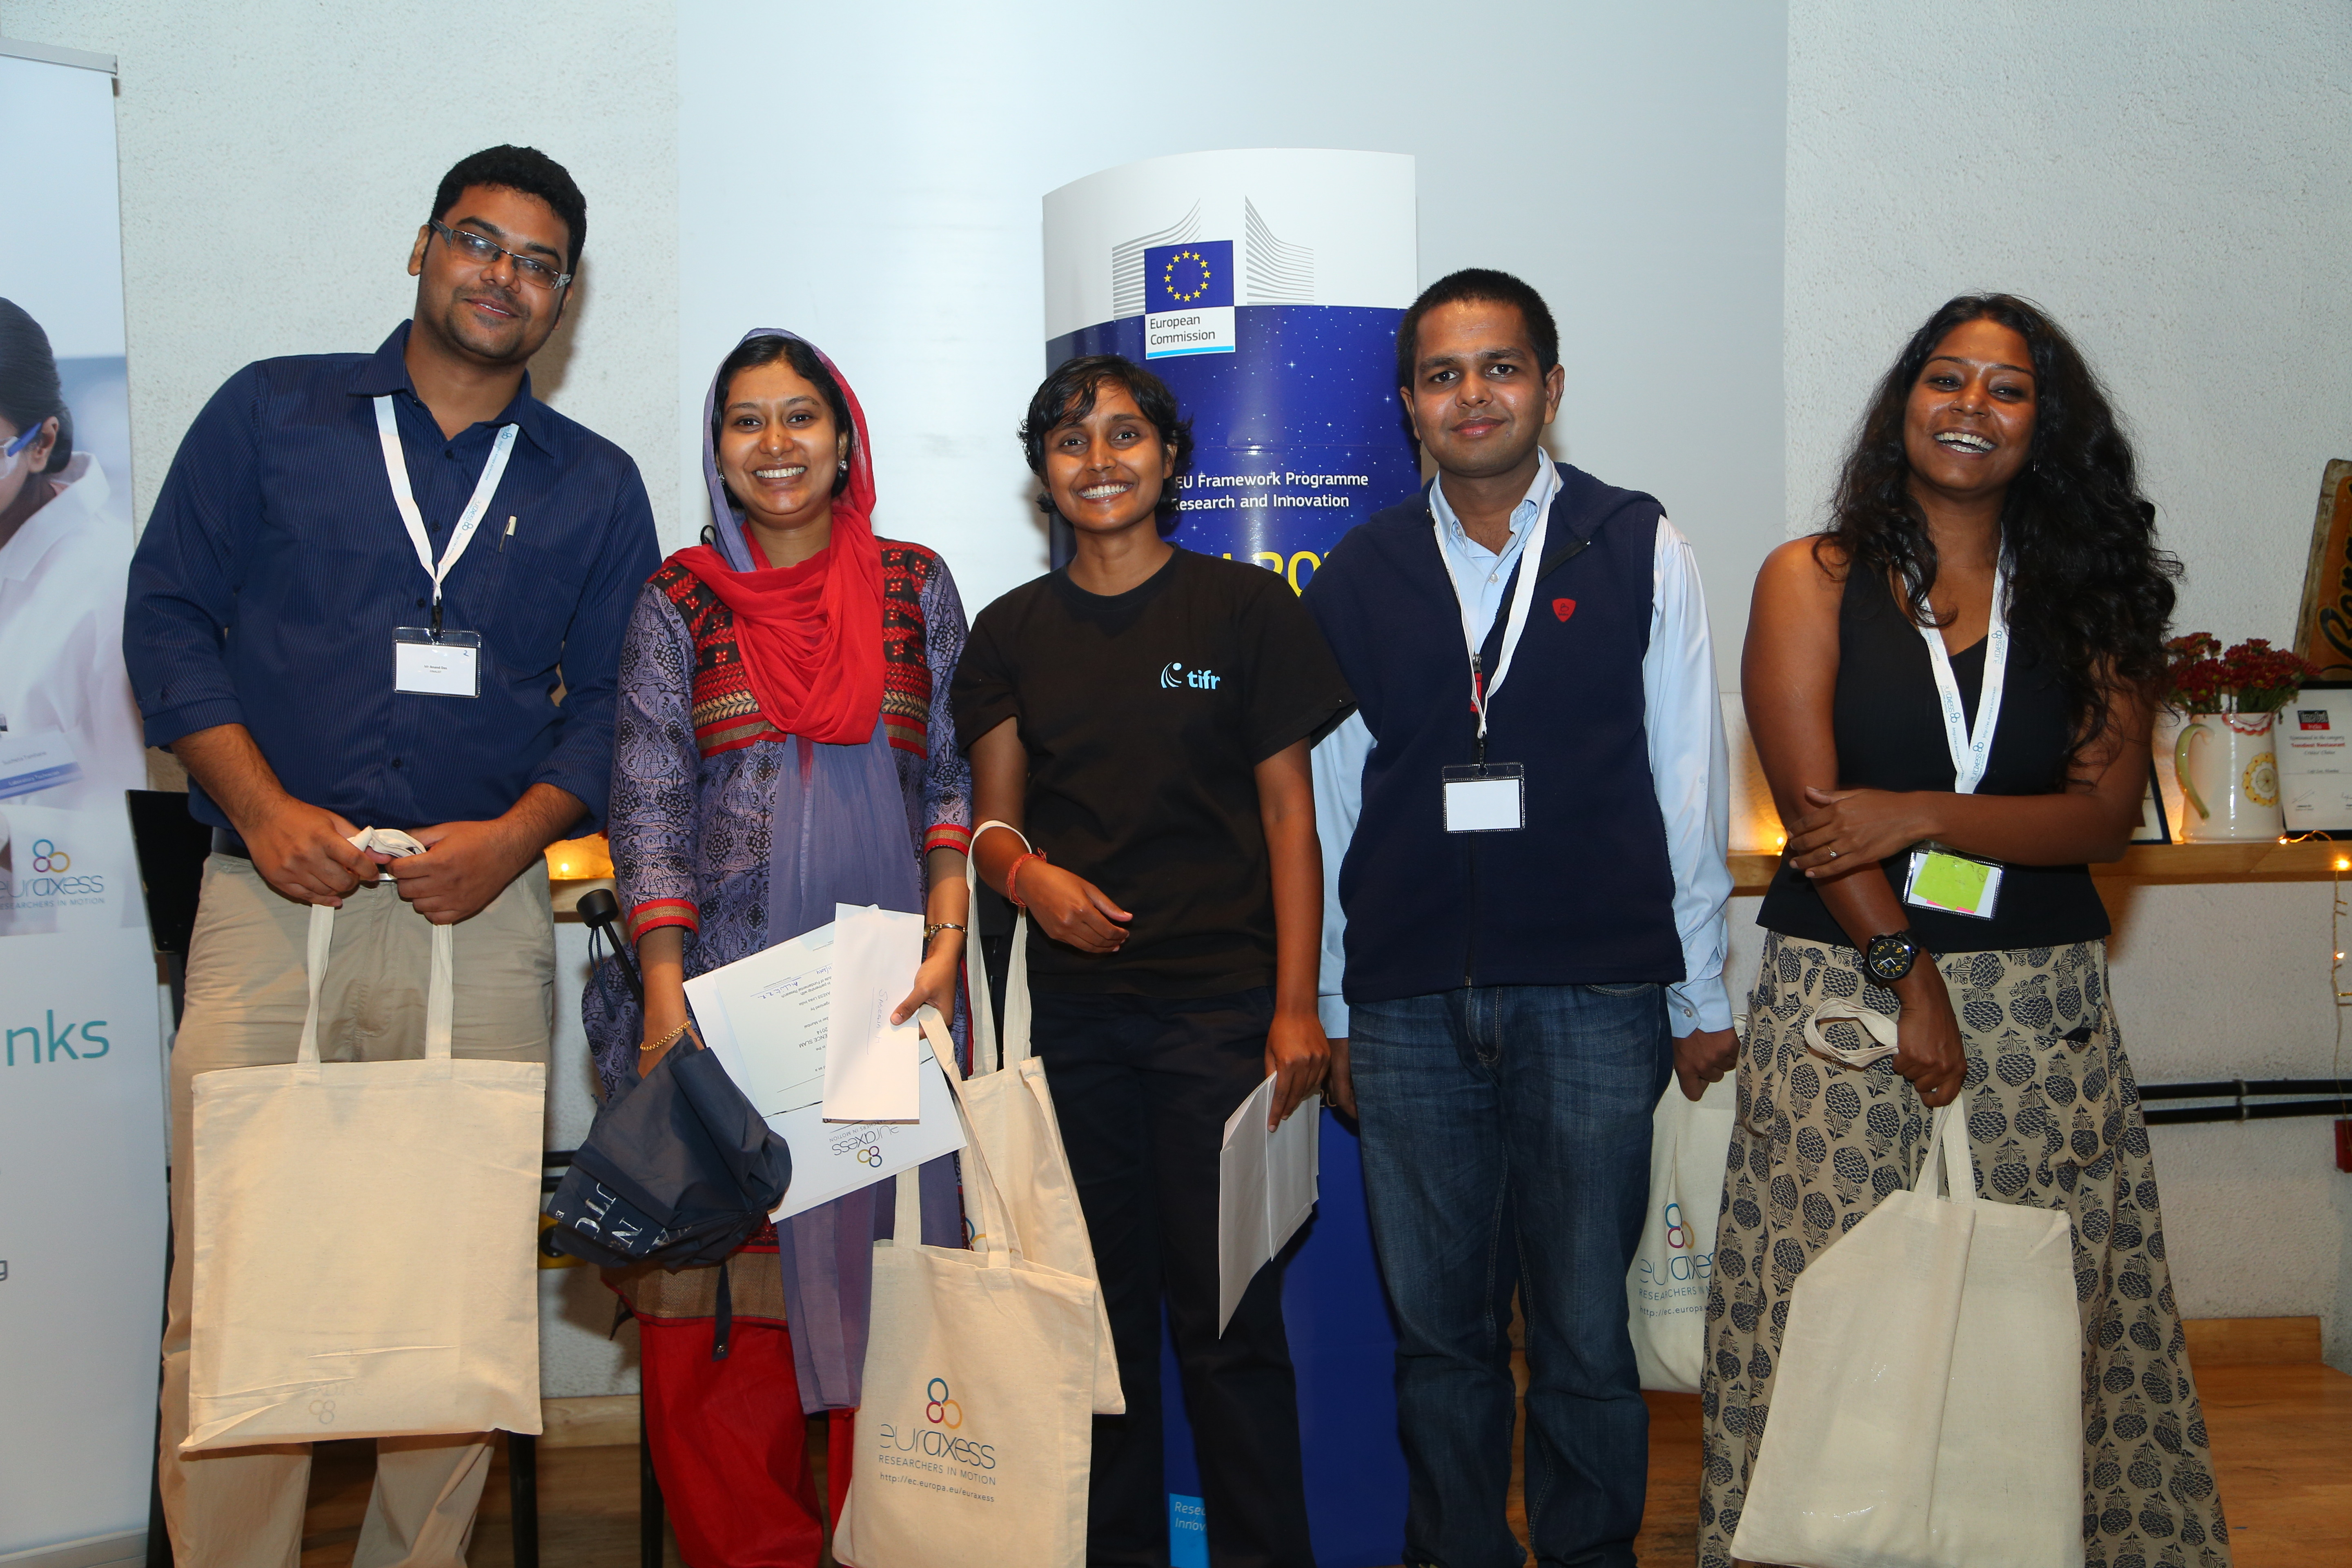 Science Slam India 2014 finalists